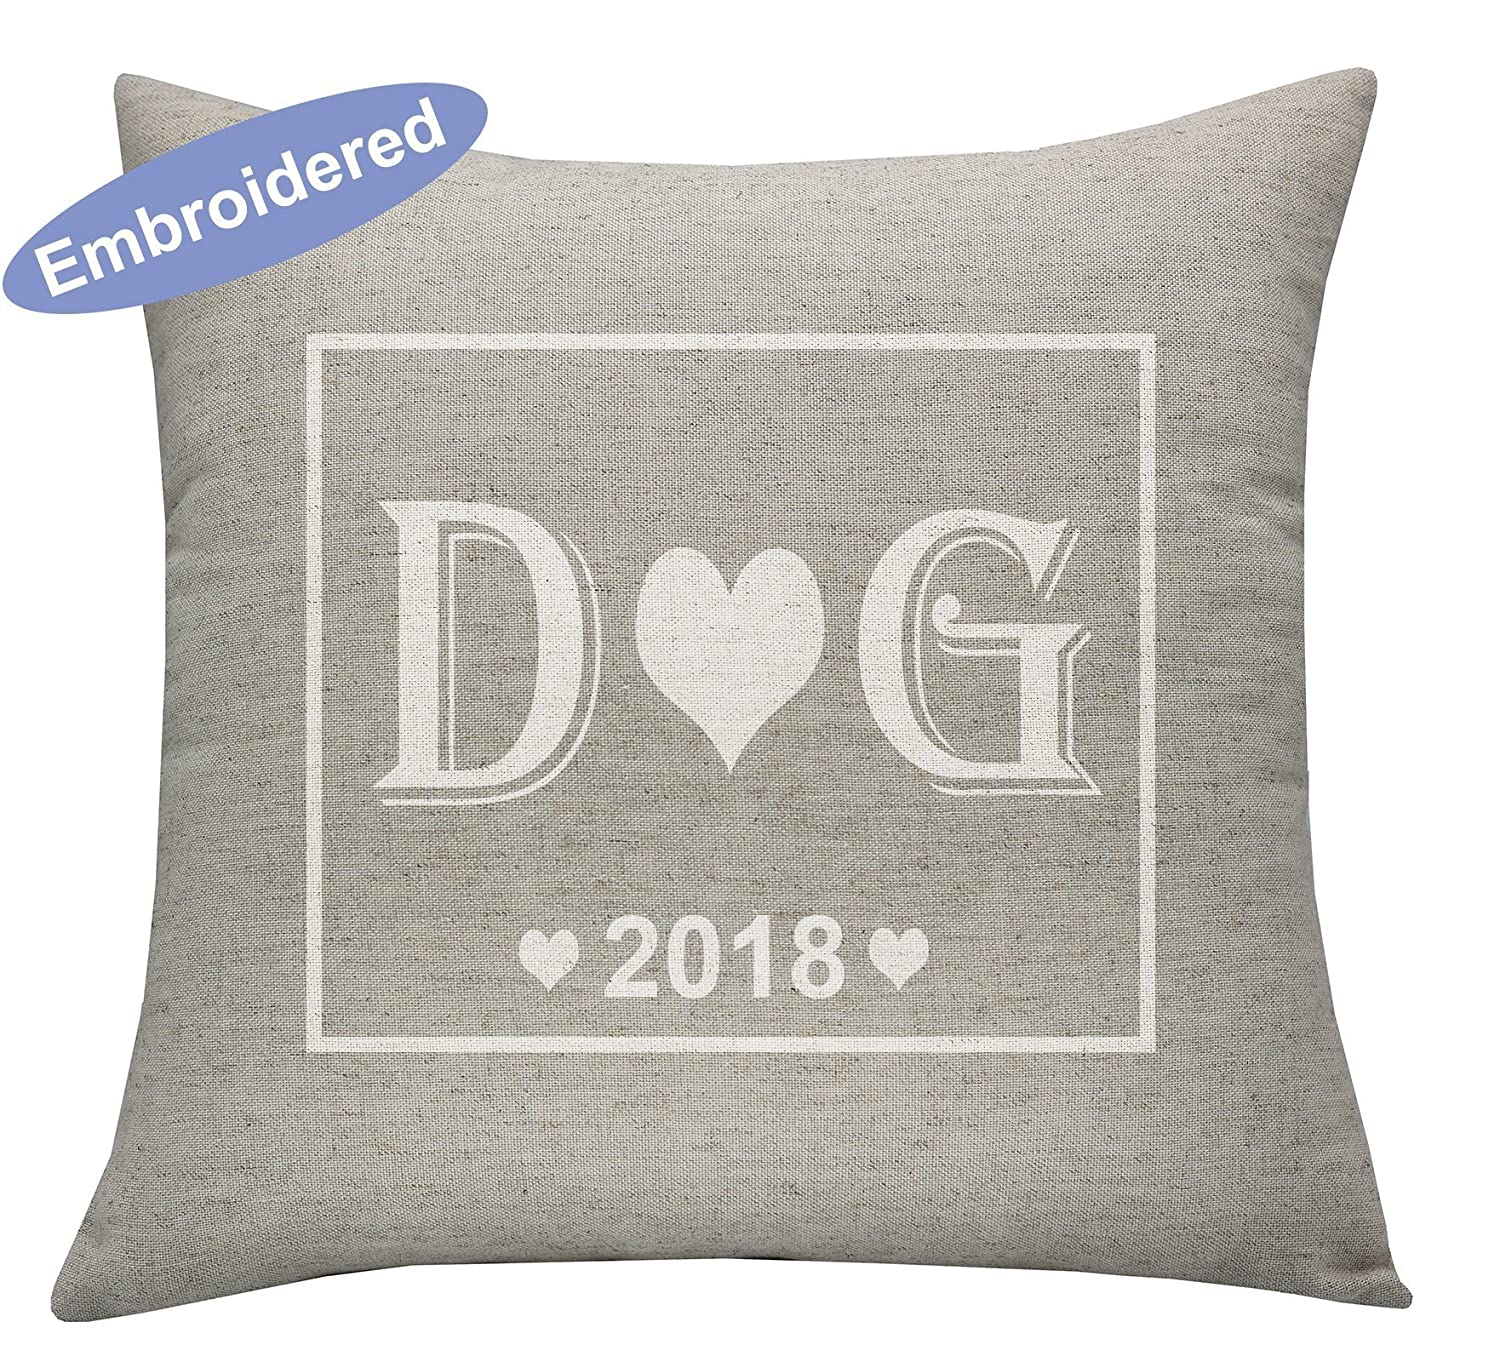 YugTex Cushion Cover Valentine gift, Couples Gift, 2nd anniversary Gift, romantic 2 year gift, initials, Cotton anniversary, gift for her, gift for him, Love Pillow Covers, Romantic Gifts, Couple Gifts